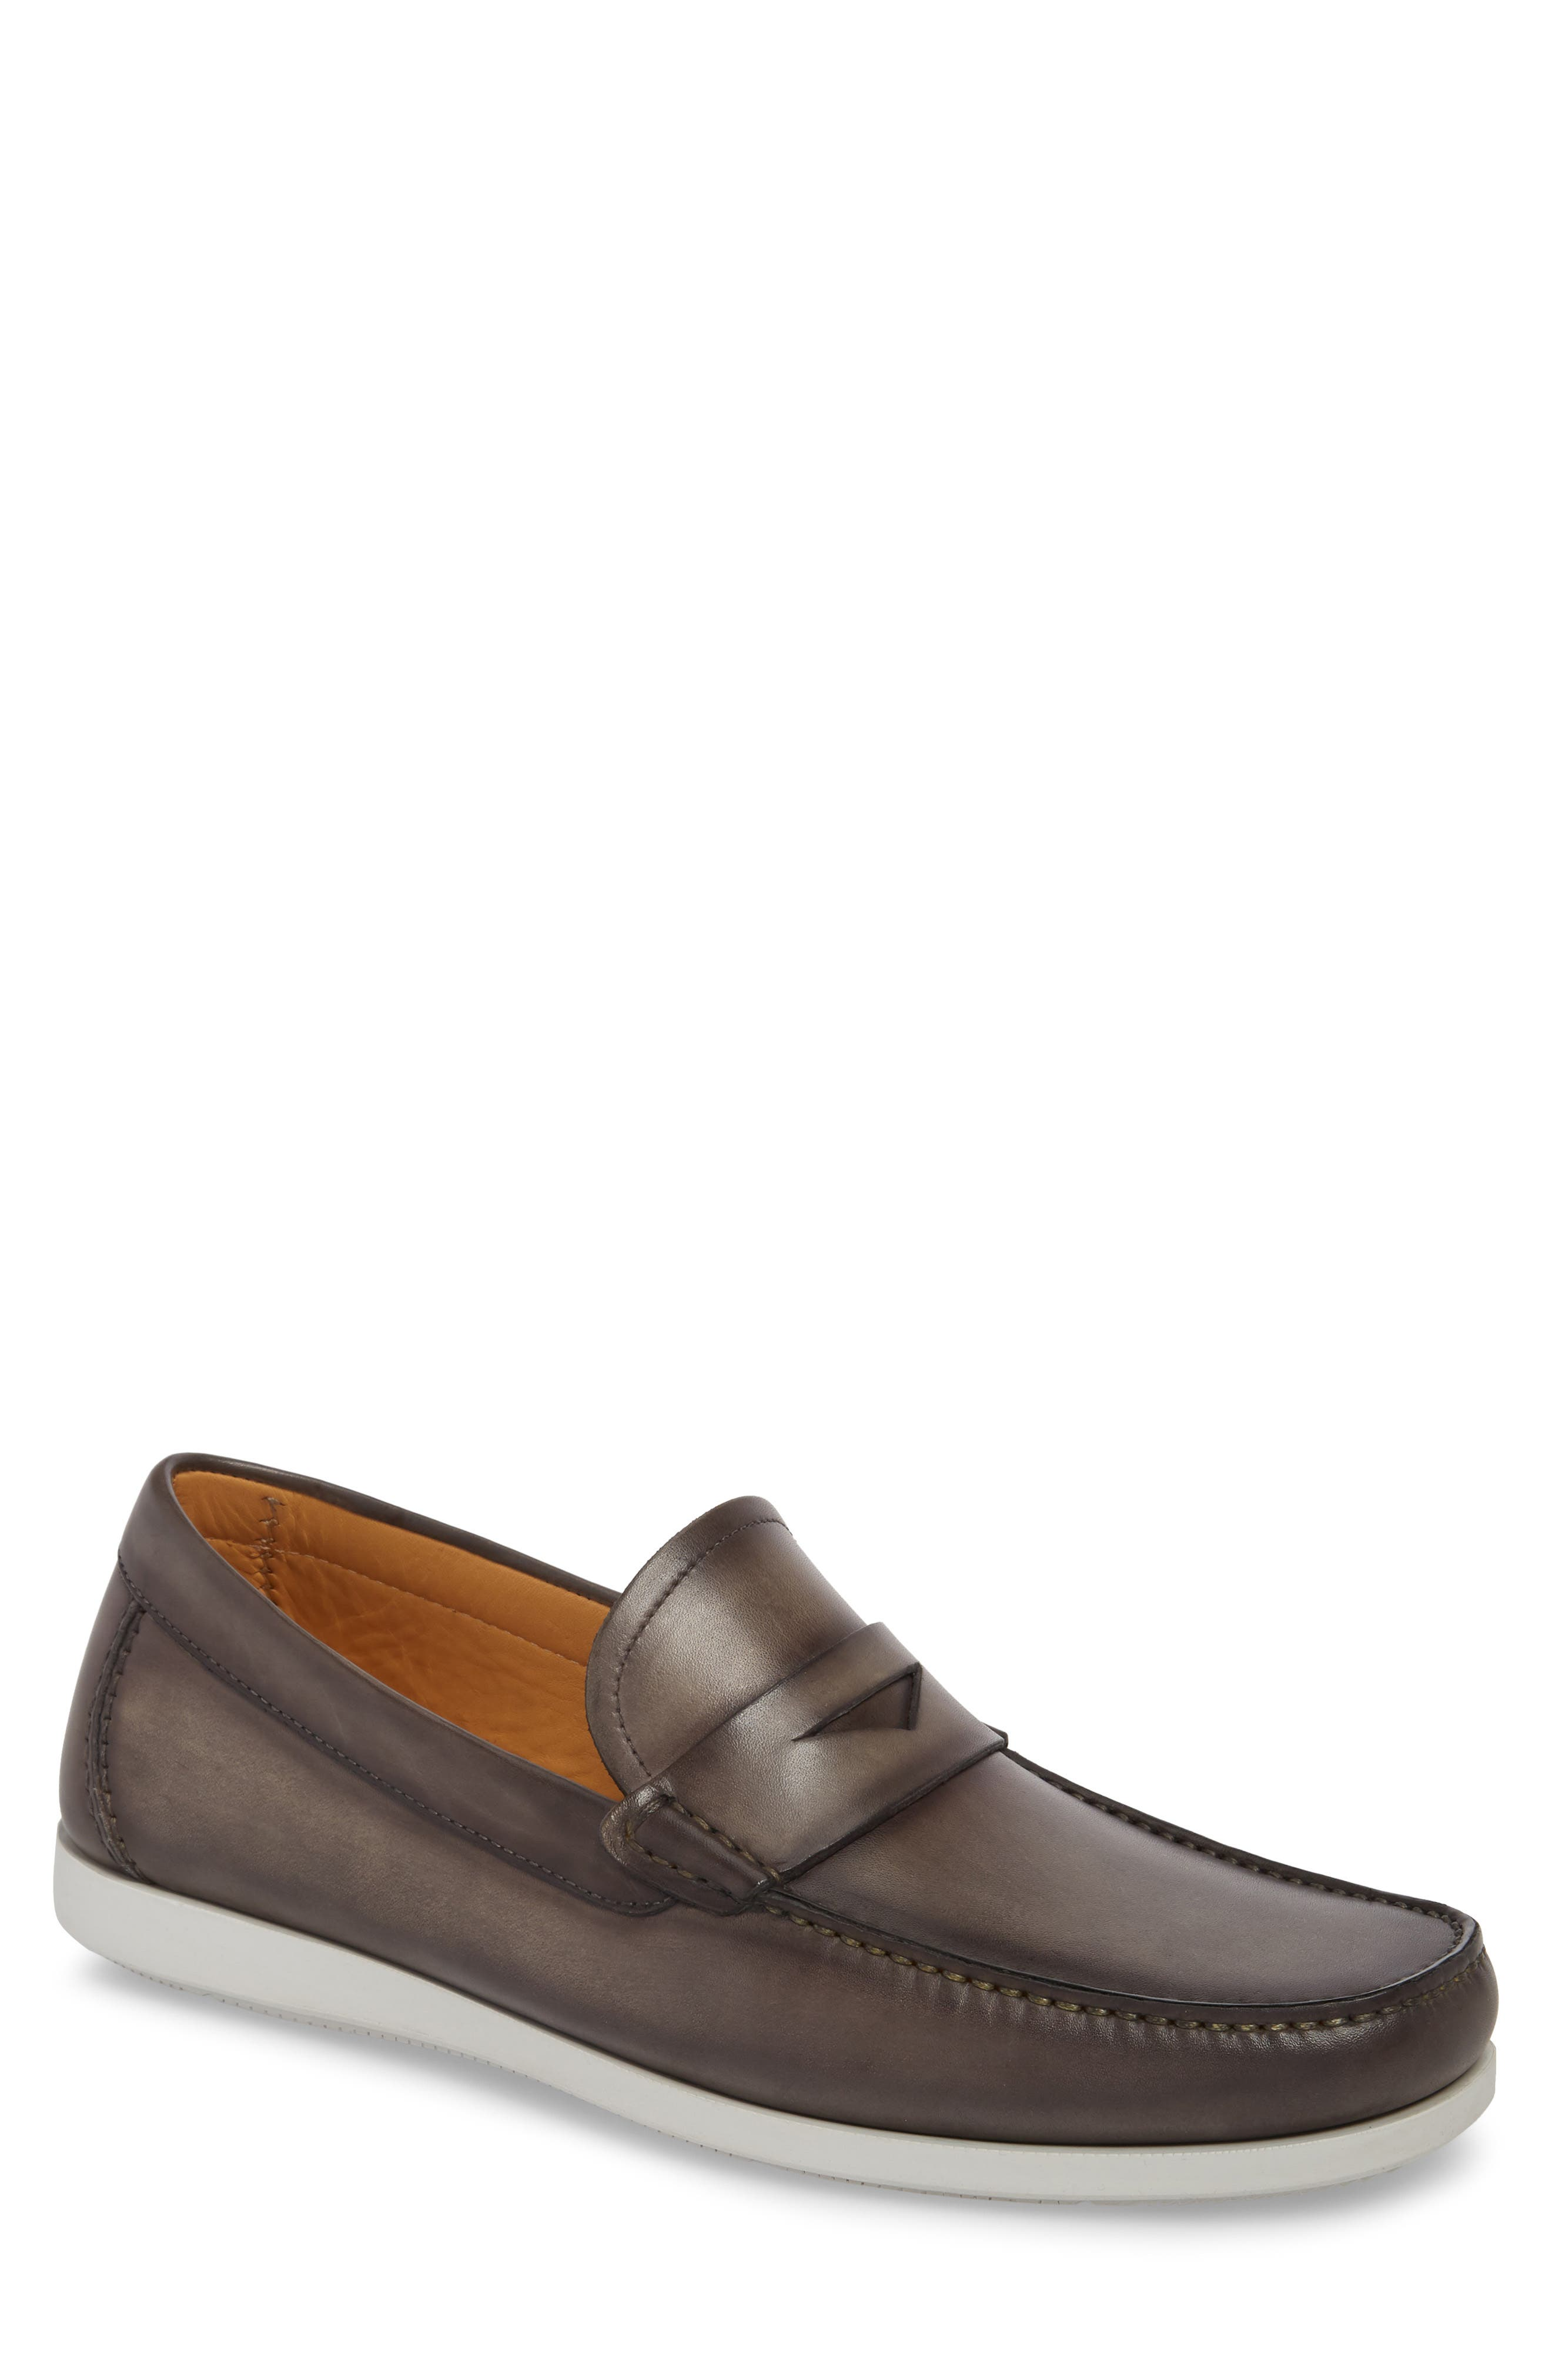 Laguna Penny Loafer,                         Main,                         color, Grey Leather